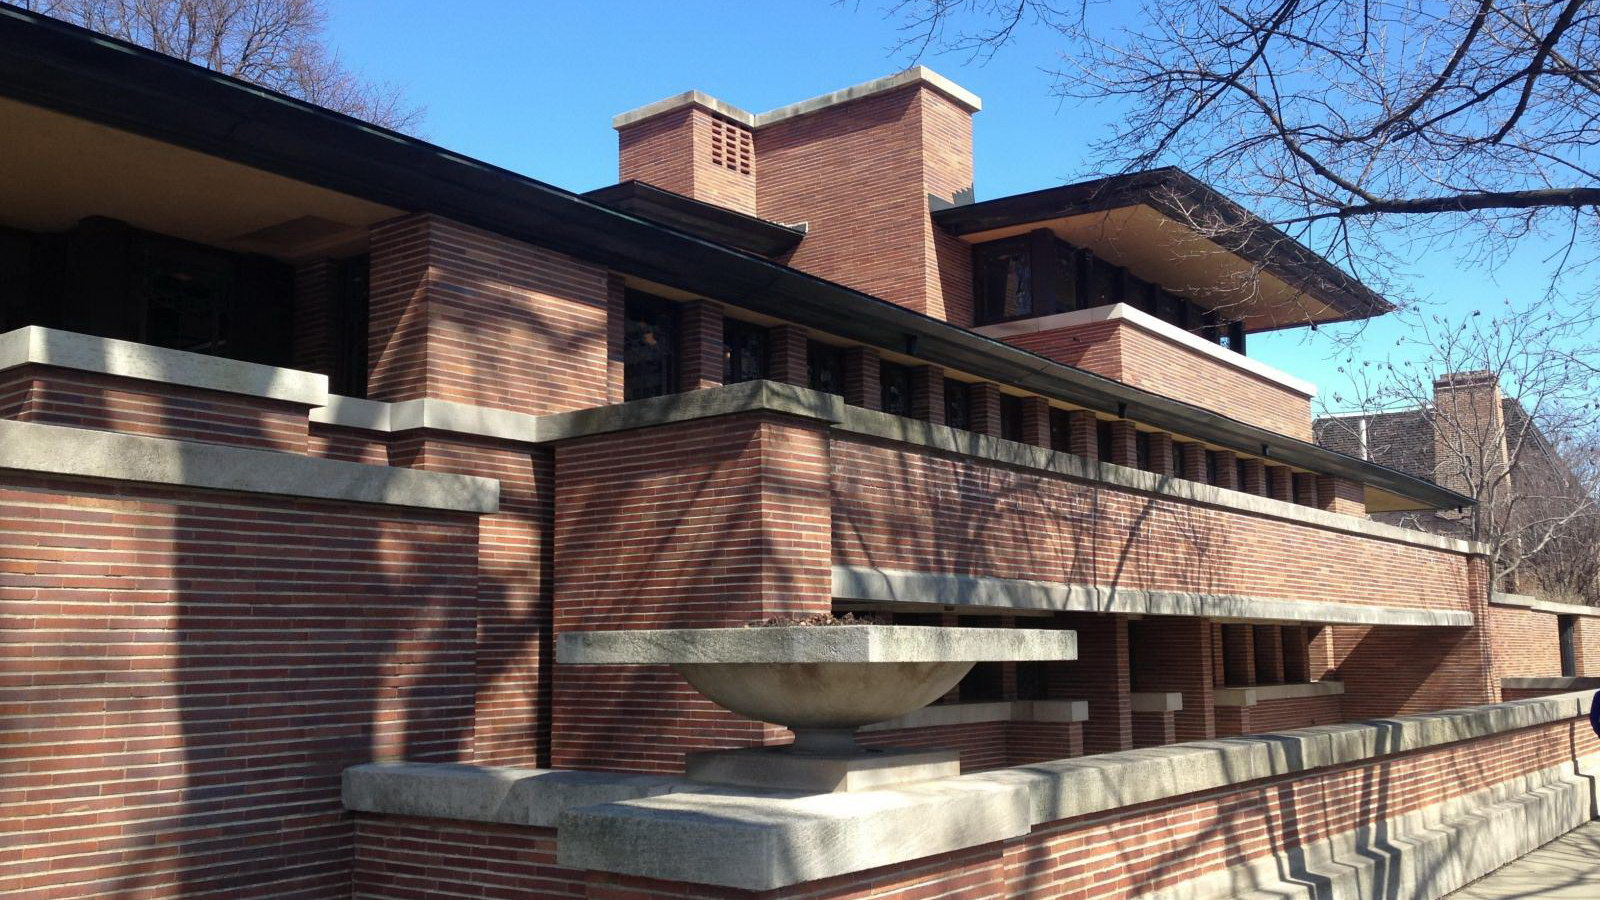 Architect Frank Lloyd Wright designs in the Midwest (Wisconsin, Illinois)